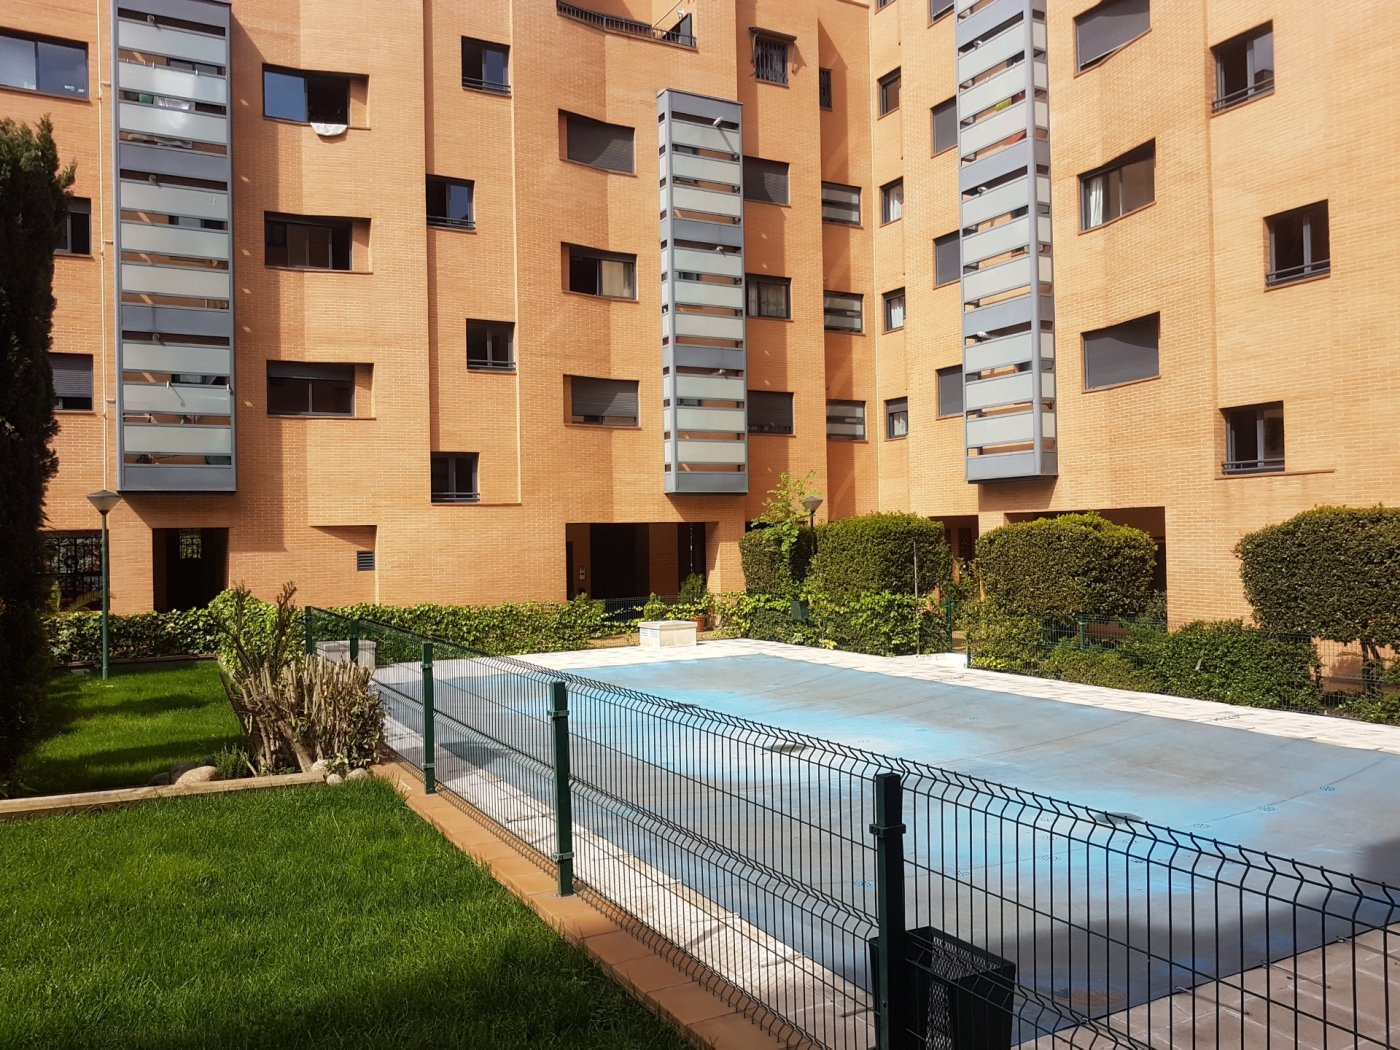 Flat - Good Condition - Legazpi - Madrid